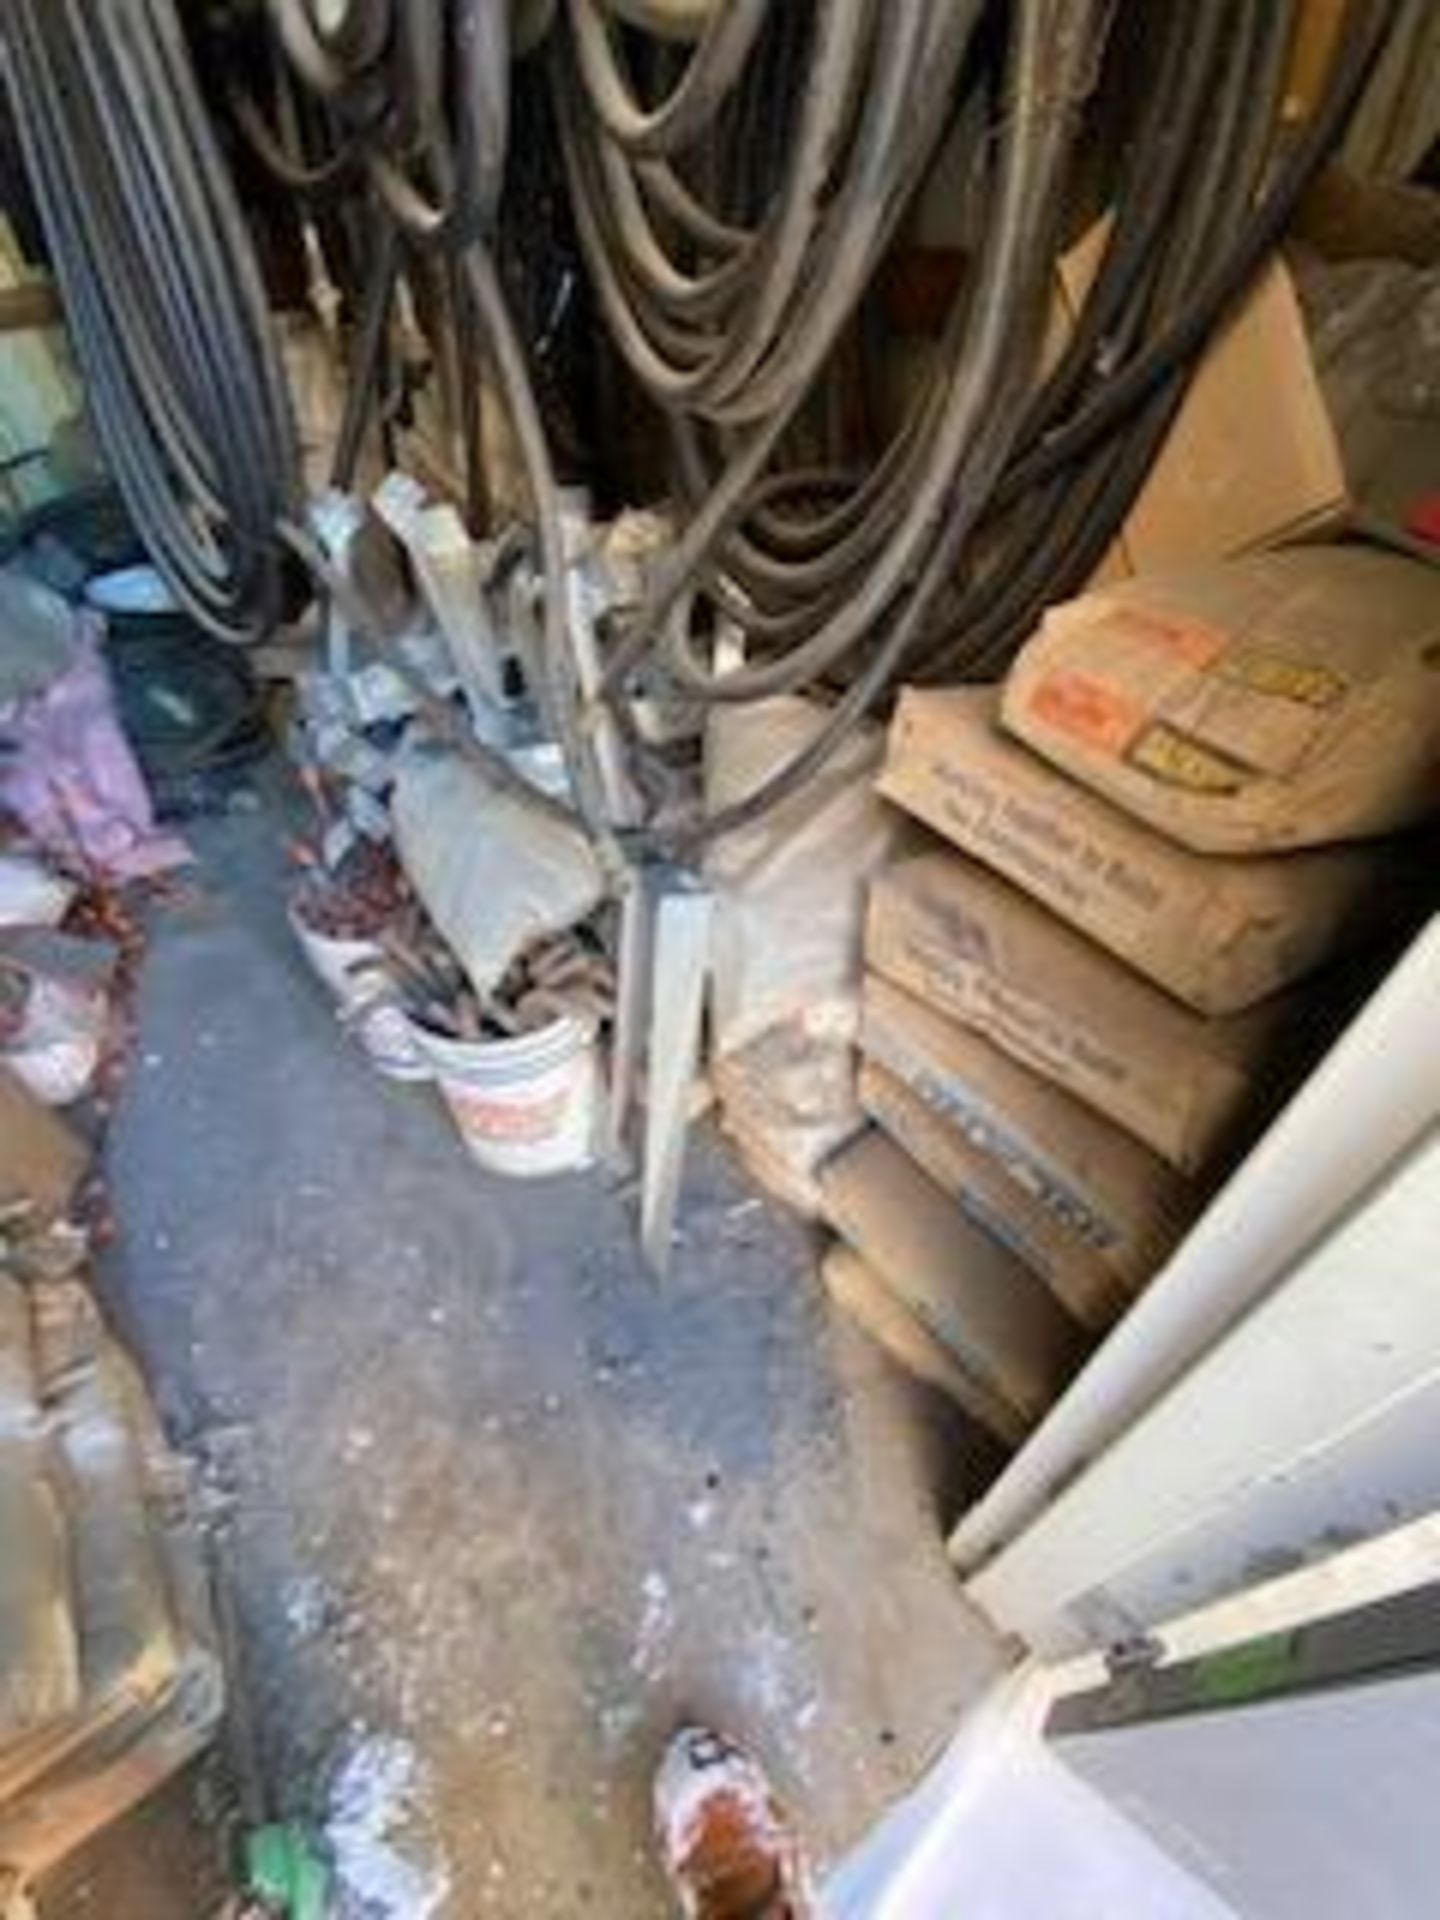 LARGE LOT OF CONCRETE ACCESSORIES - BALANCE OF SHED - Image 2 of 4